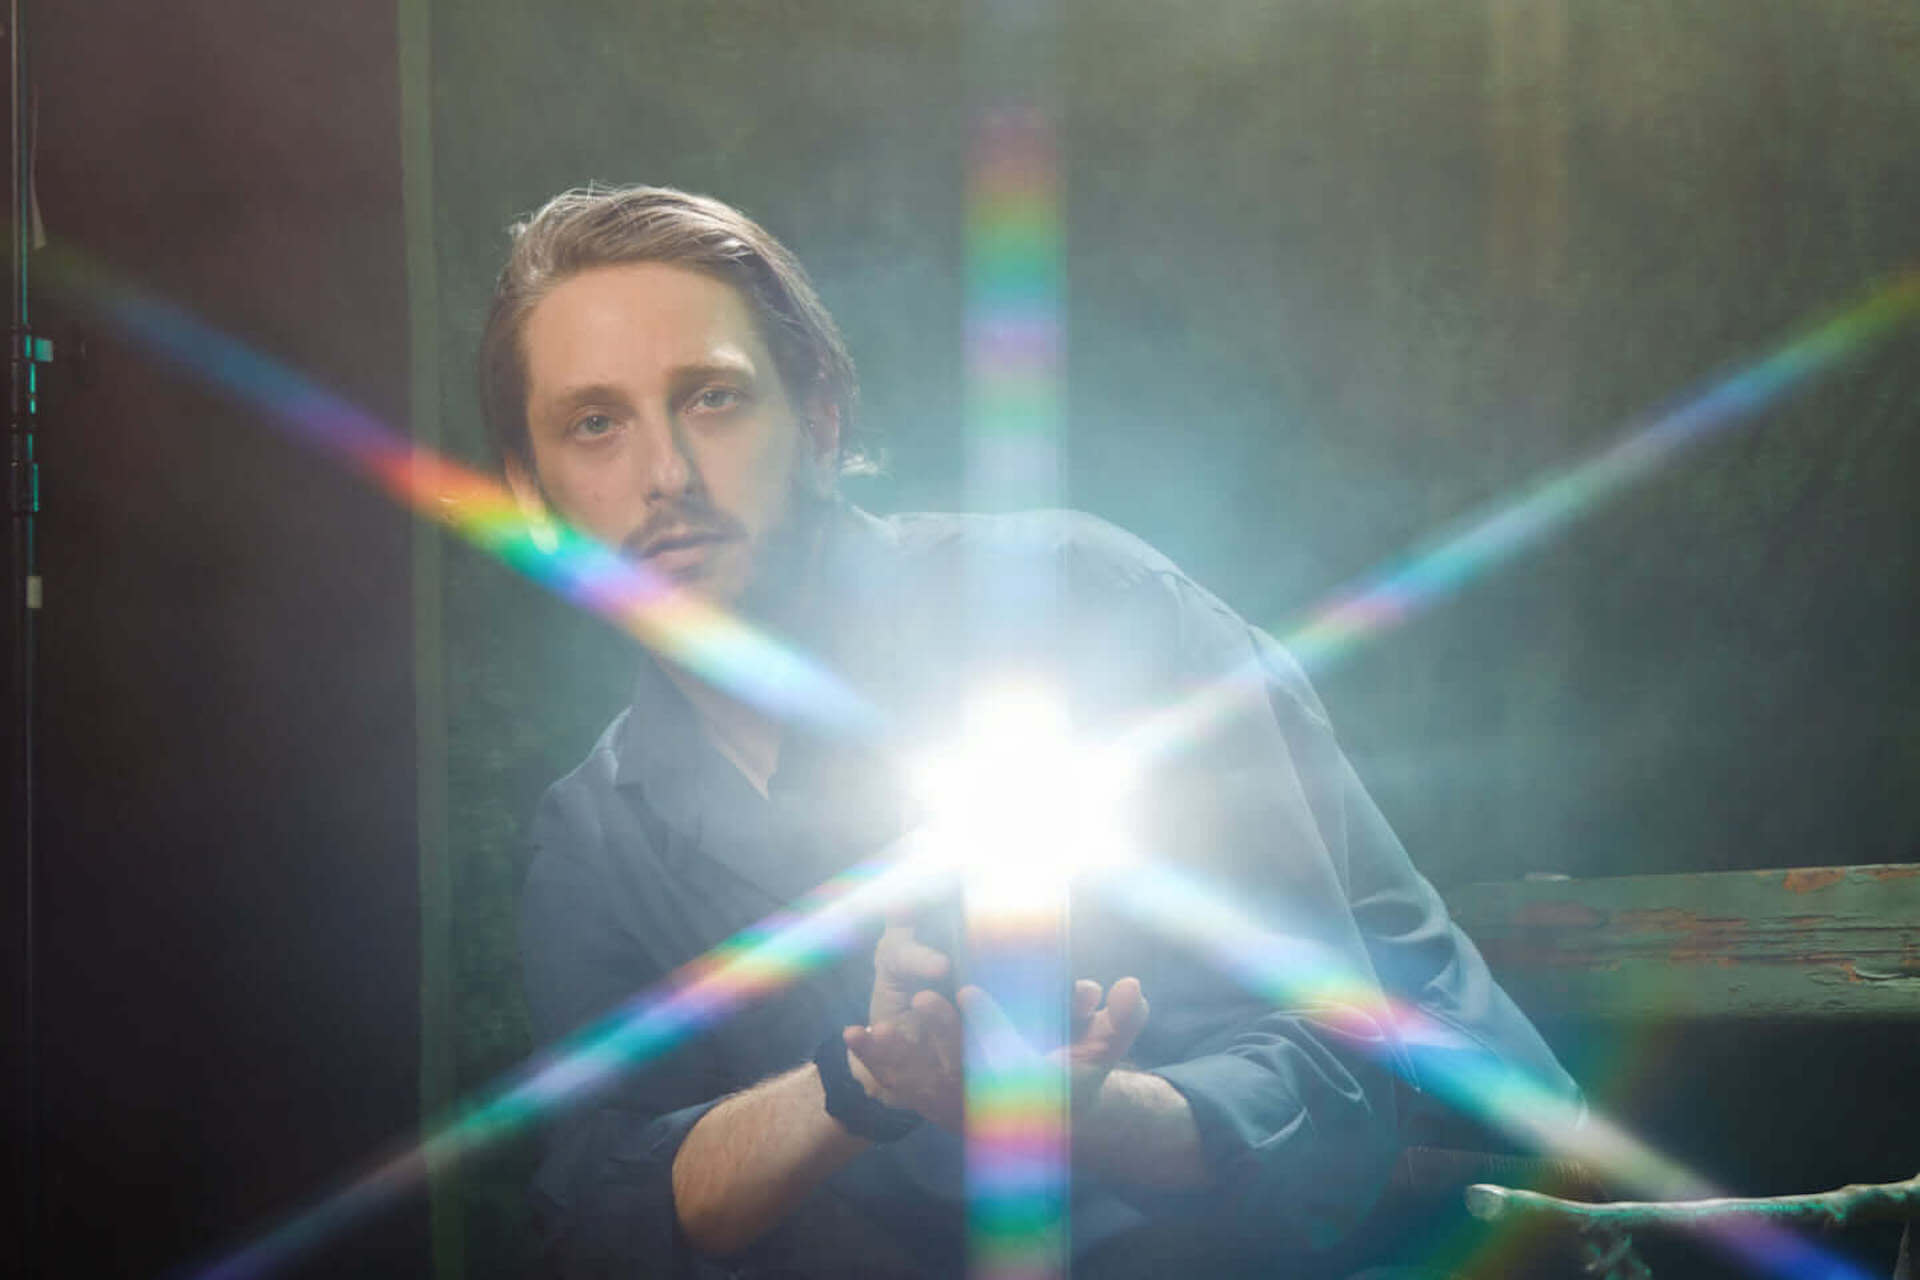 Oneohtrix Point Never最新作『Magic Oneohtrix Point Never』の収録曲5曲が解禁!The Weekndの参加も明らかに music201027_opn_7-1920x1280